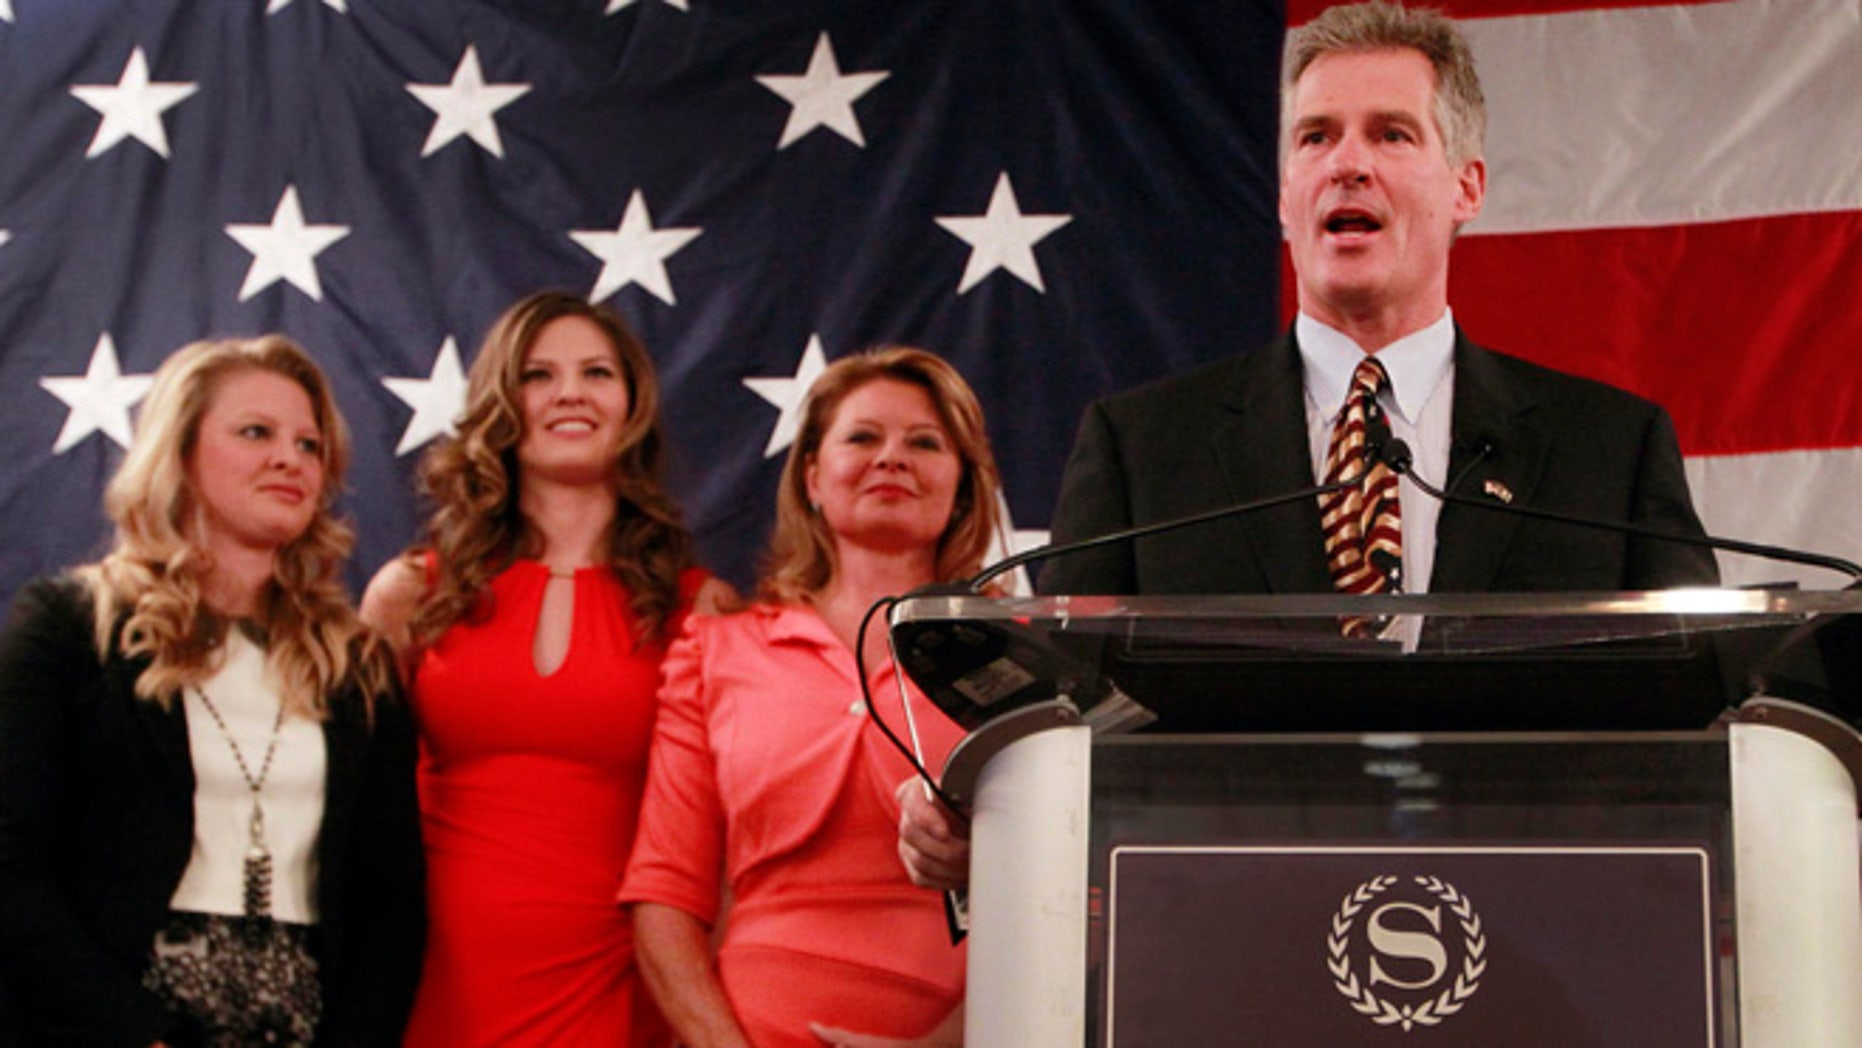 April 10, 2014: With his family at his side, daughters Arianna, left, and Ayla, and his wife Gail, former Mass. U.S. Senator Scott Brown announces his plans to run for the U.S. Senate in New Hampshire.